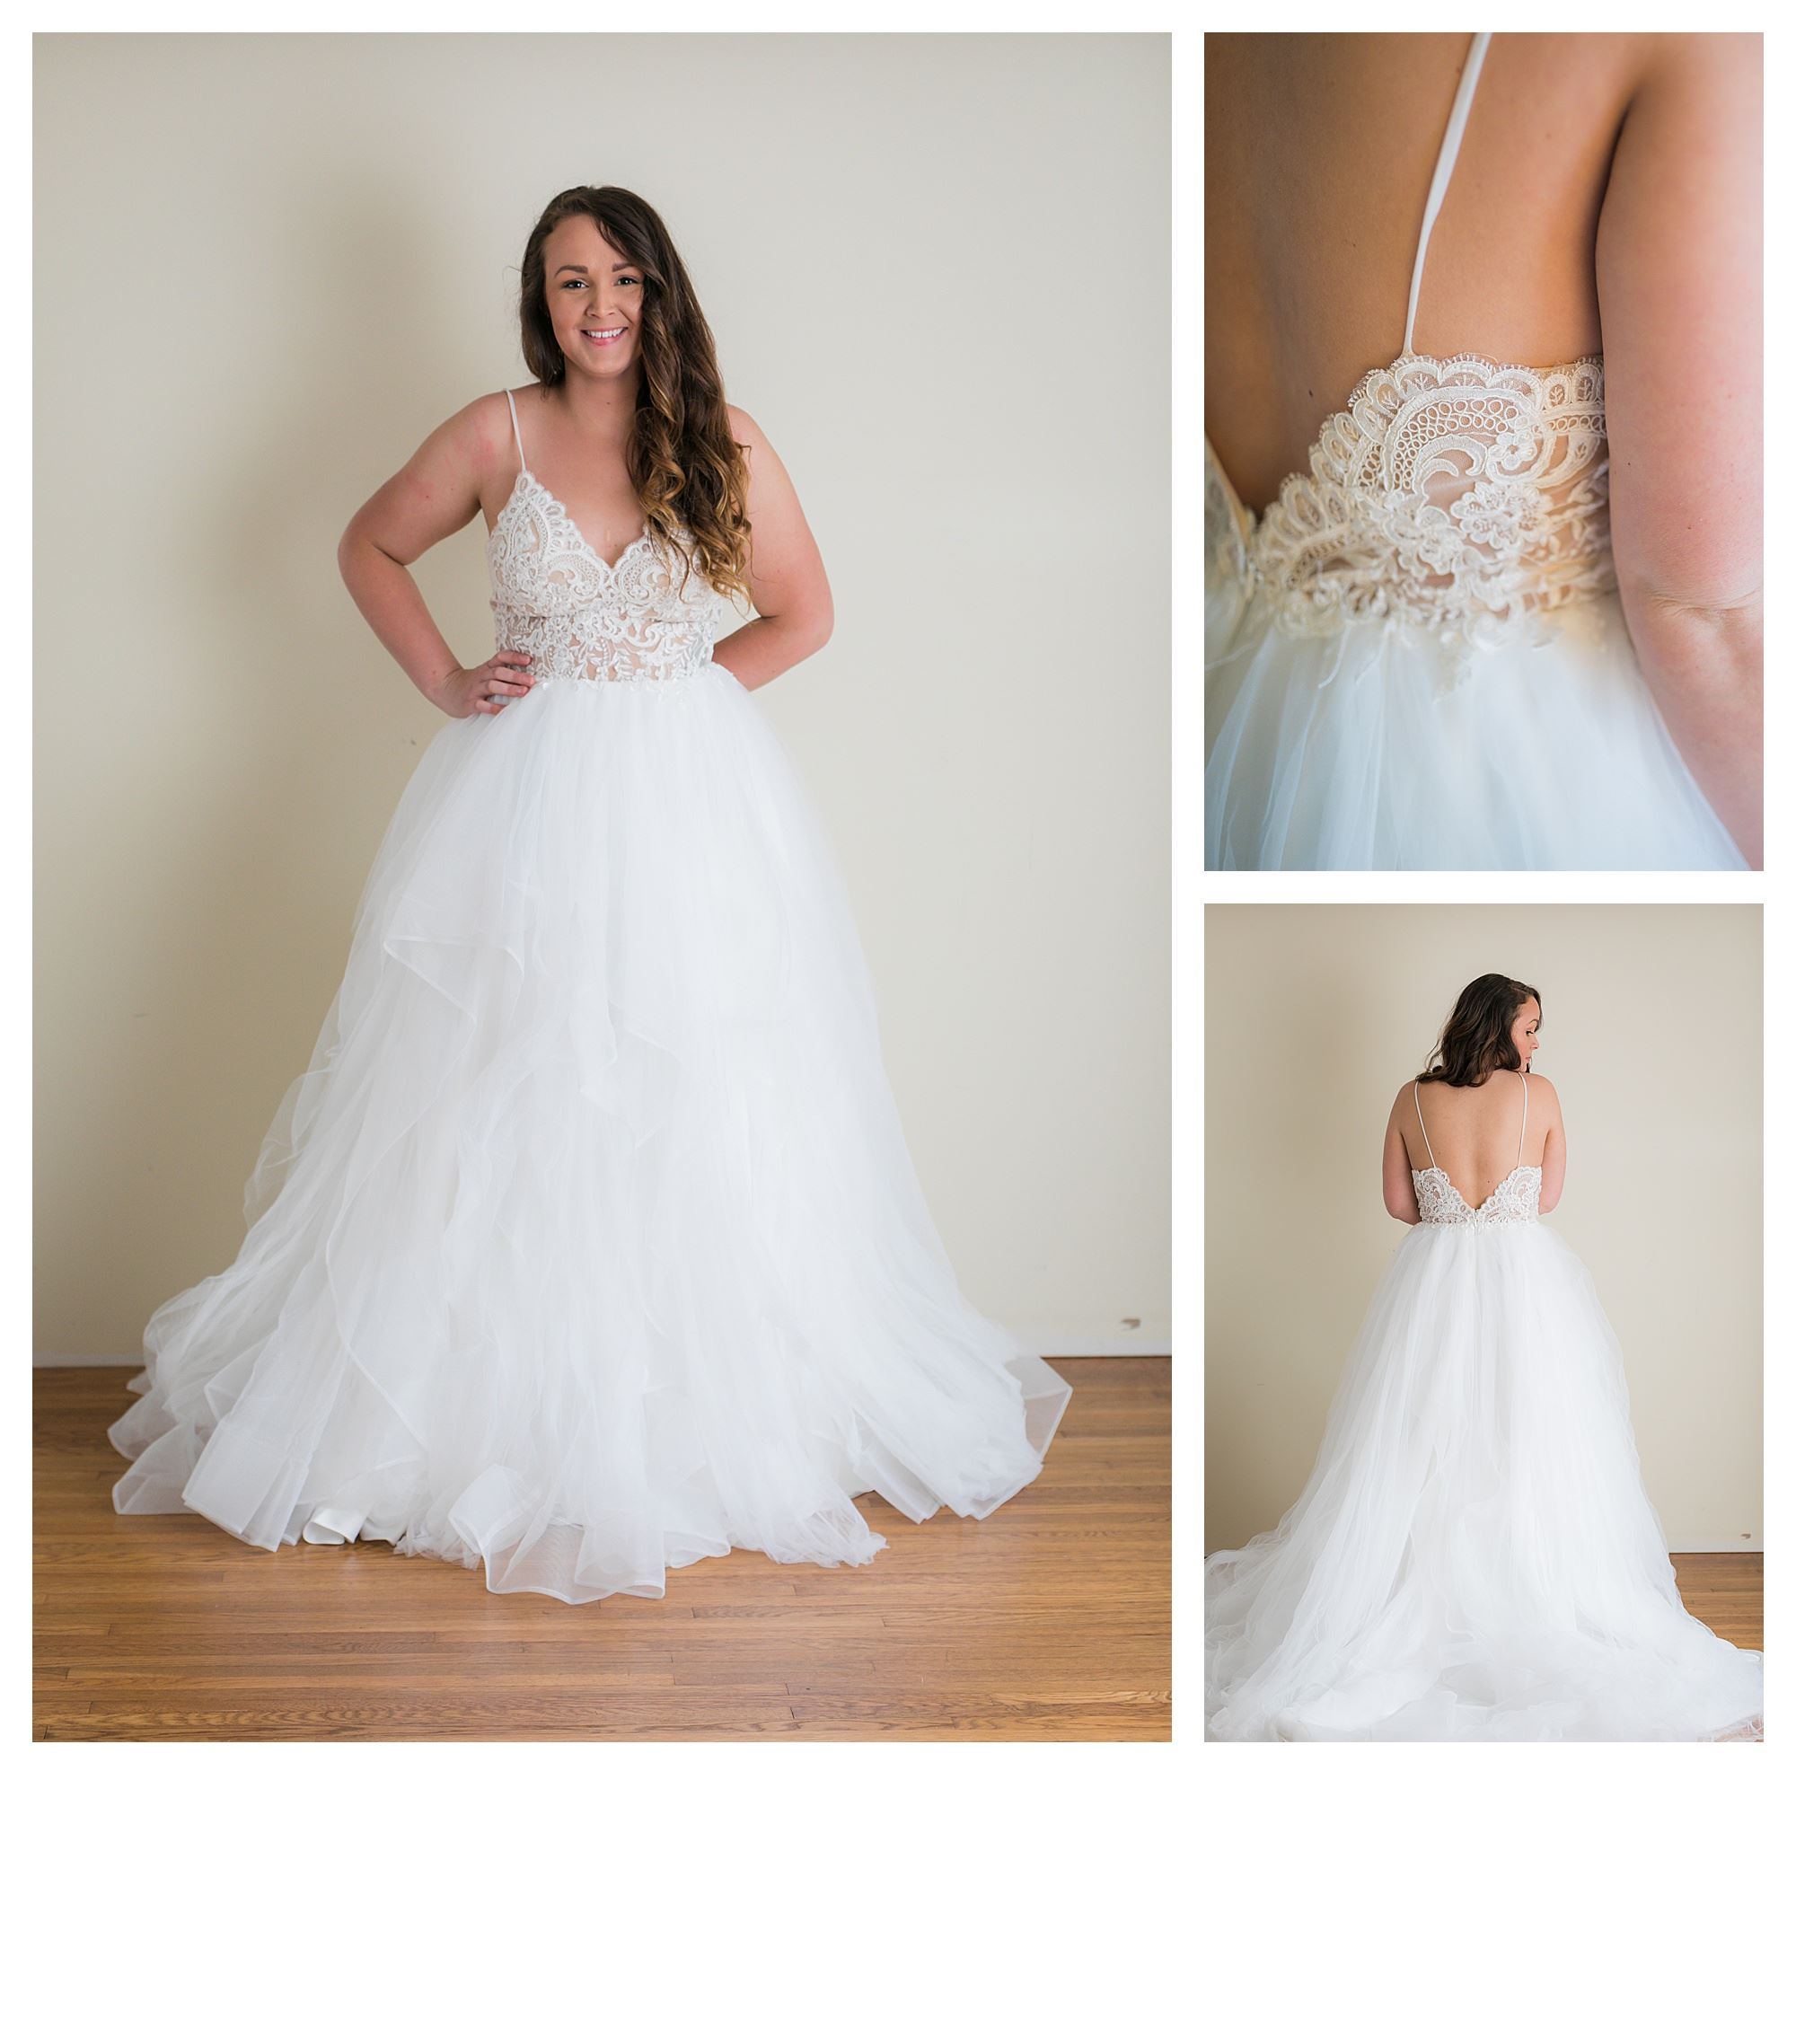 Samantha - Size 12 - Ivory/Lt Nude - Originally priced $1499 - Sample box price $999